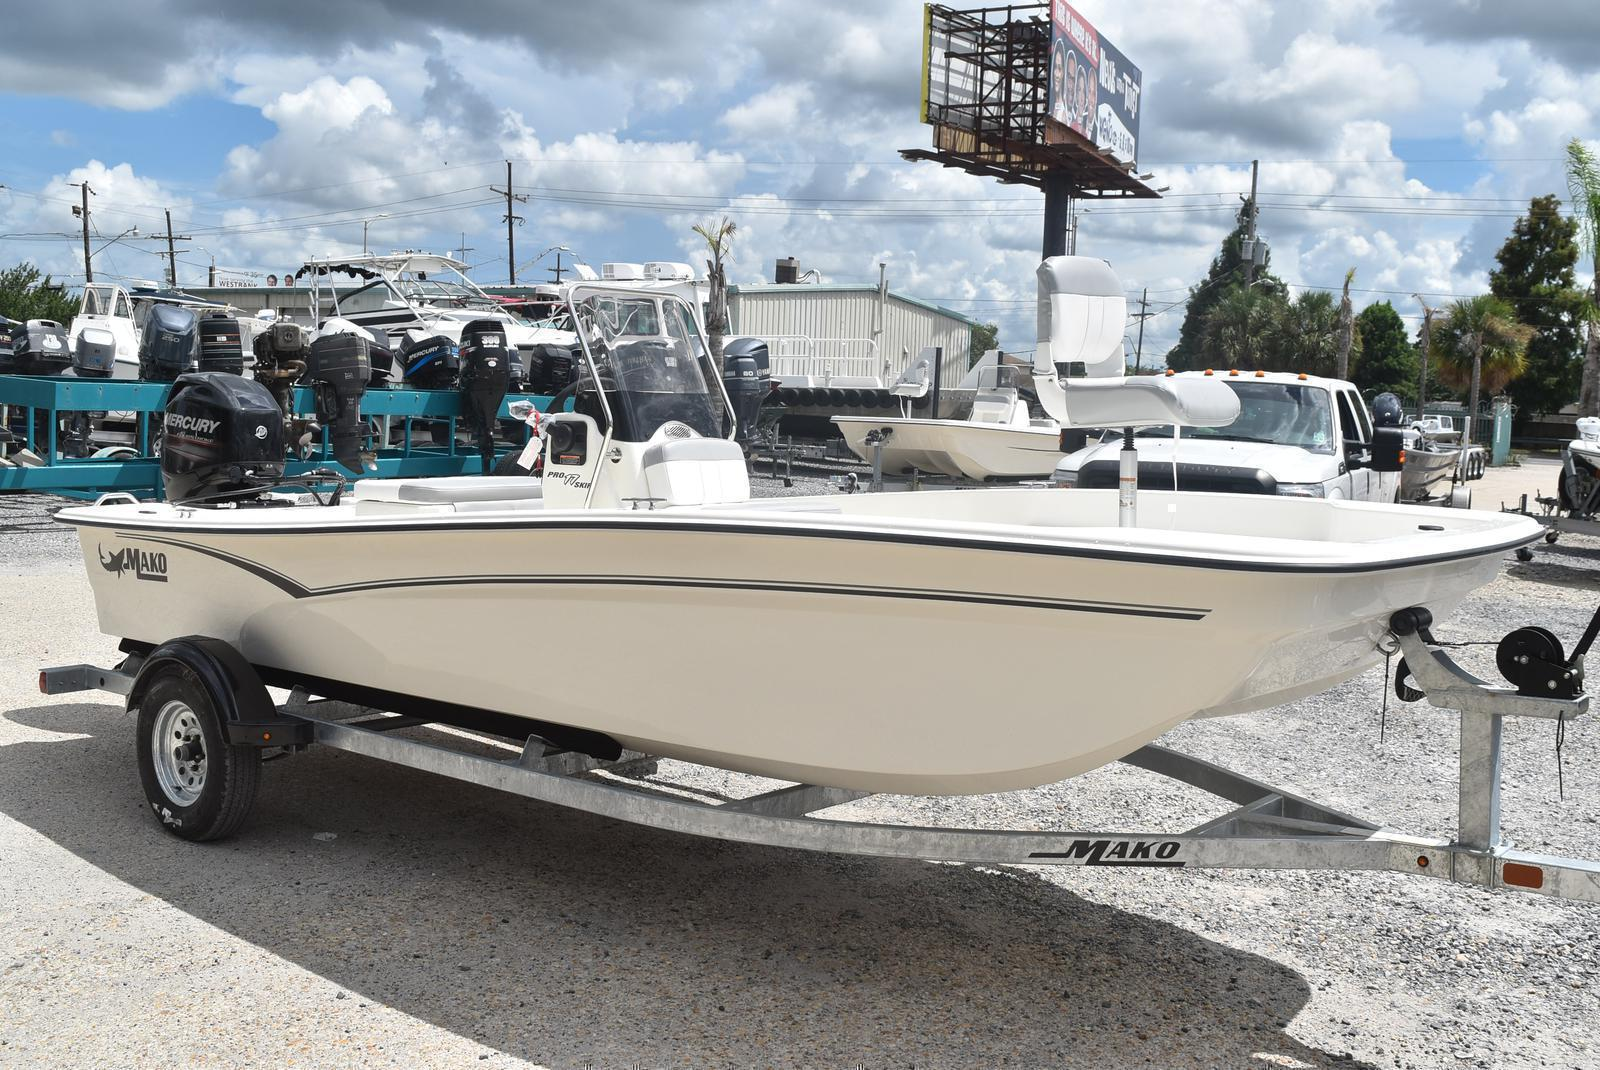 2020 Mako boat for sale, model of the boat is Pro Skiff 17, 75 ELPT & Image # 627 of 702